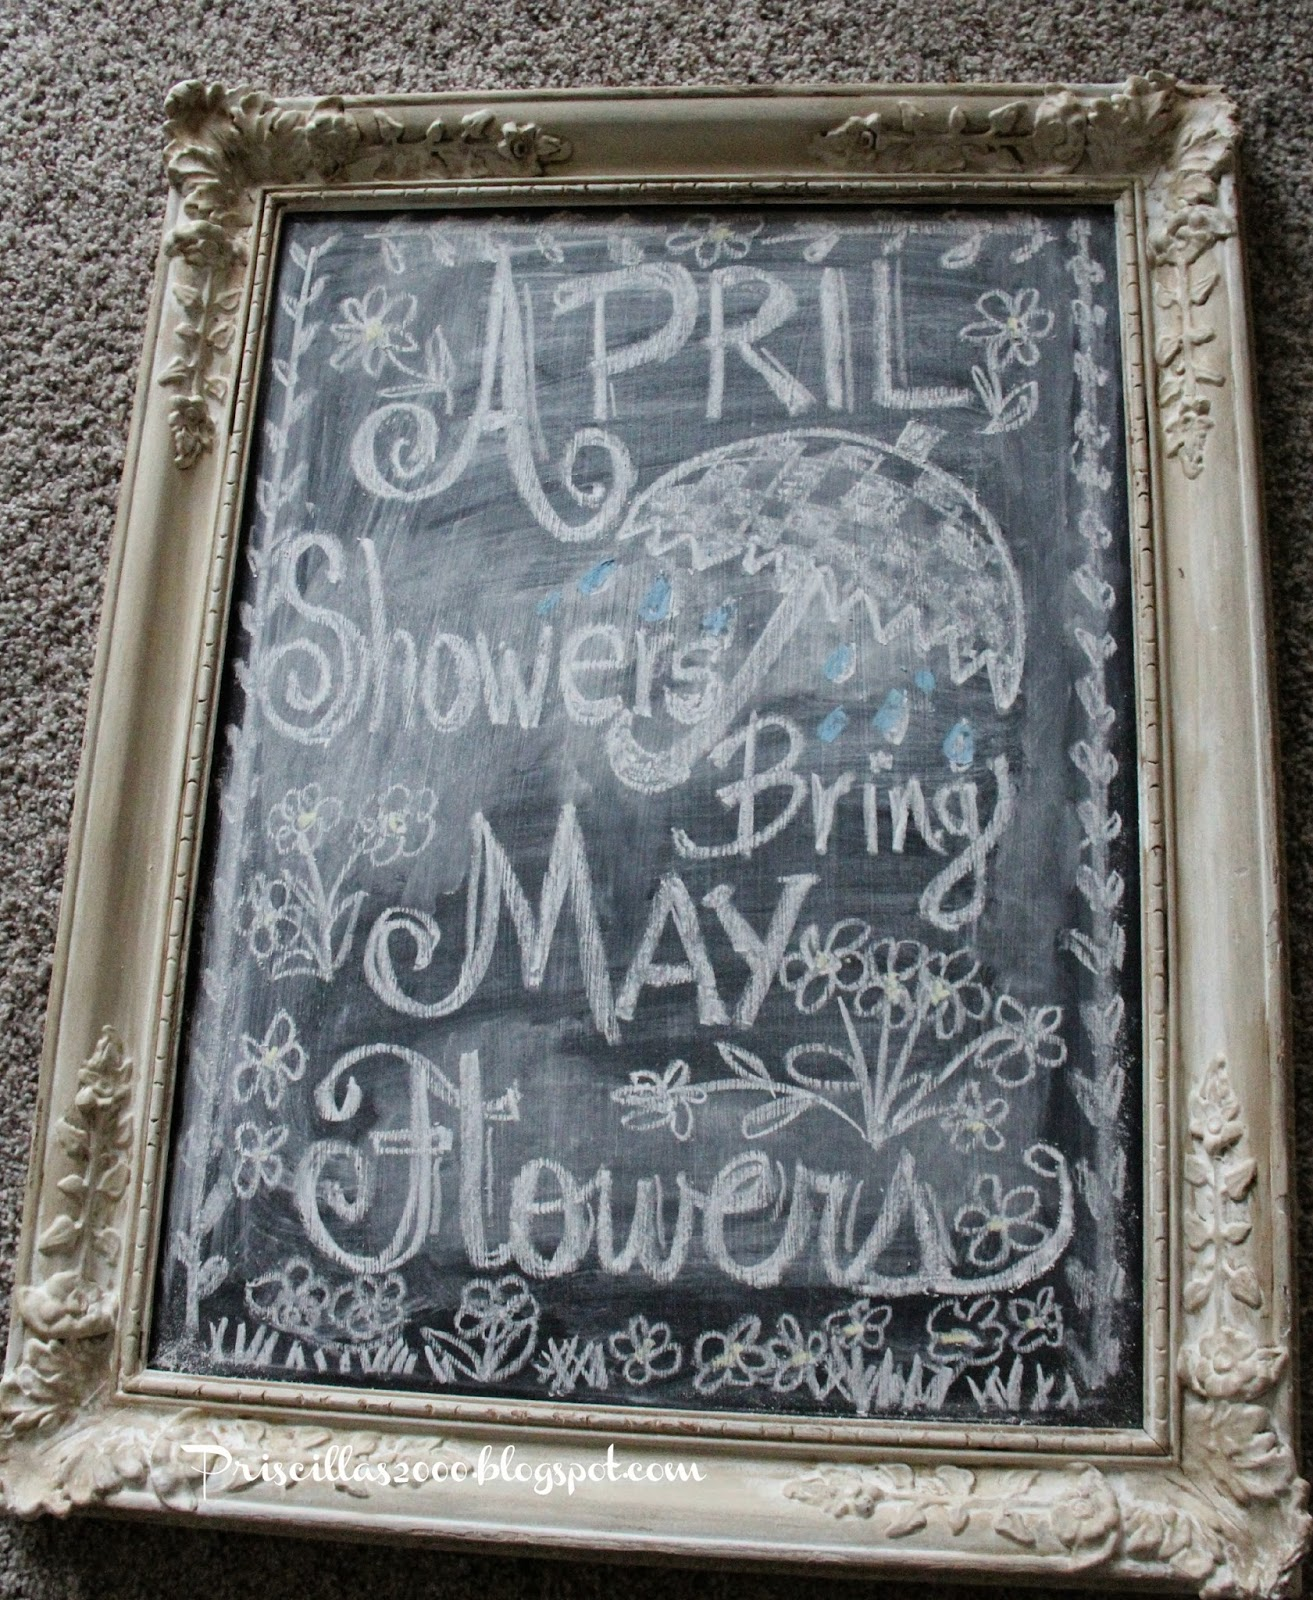 April Showers Bring May Flowers Spring Chalkboard: Priscillas: April Showers Bring May Flowers Chalkboard